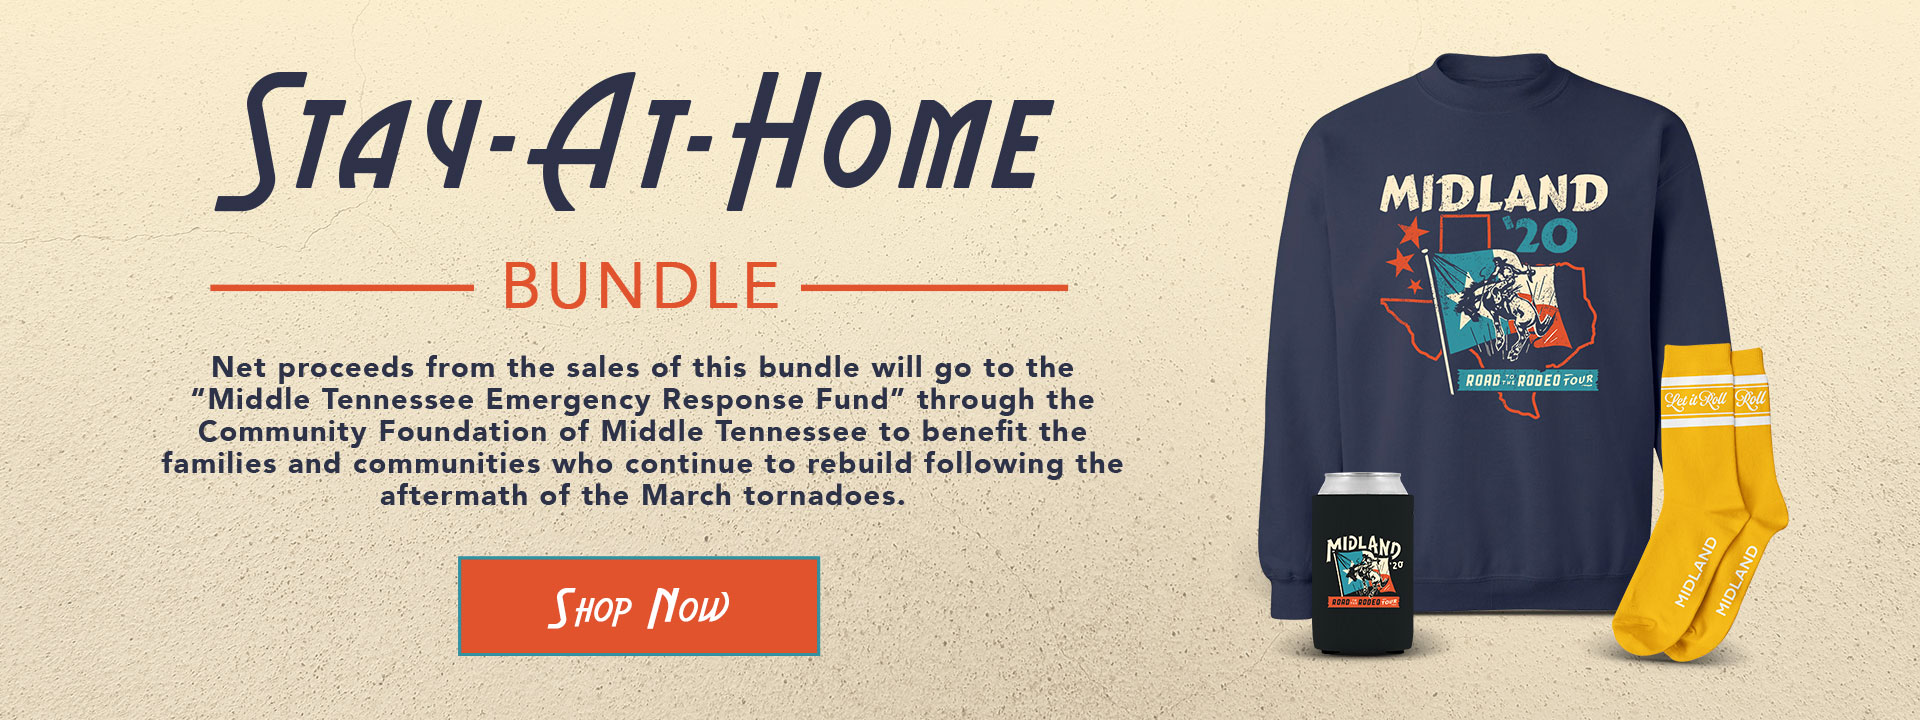 "Stay at Home Bundle | Net proceeds from the sales of this bundle will go to the ""Middle Tennessee Emergency Response Fund"" through the Community Foundation of Middle Tennessee to benefit the families and communities who contribute to rebuild following the aftermath of the March tornadoes. 